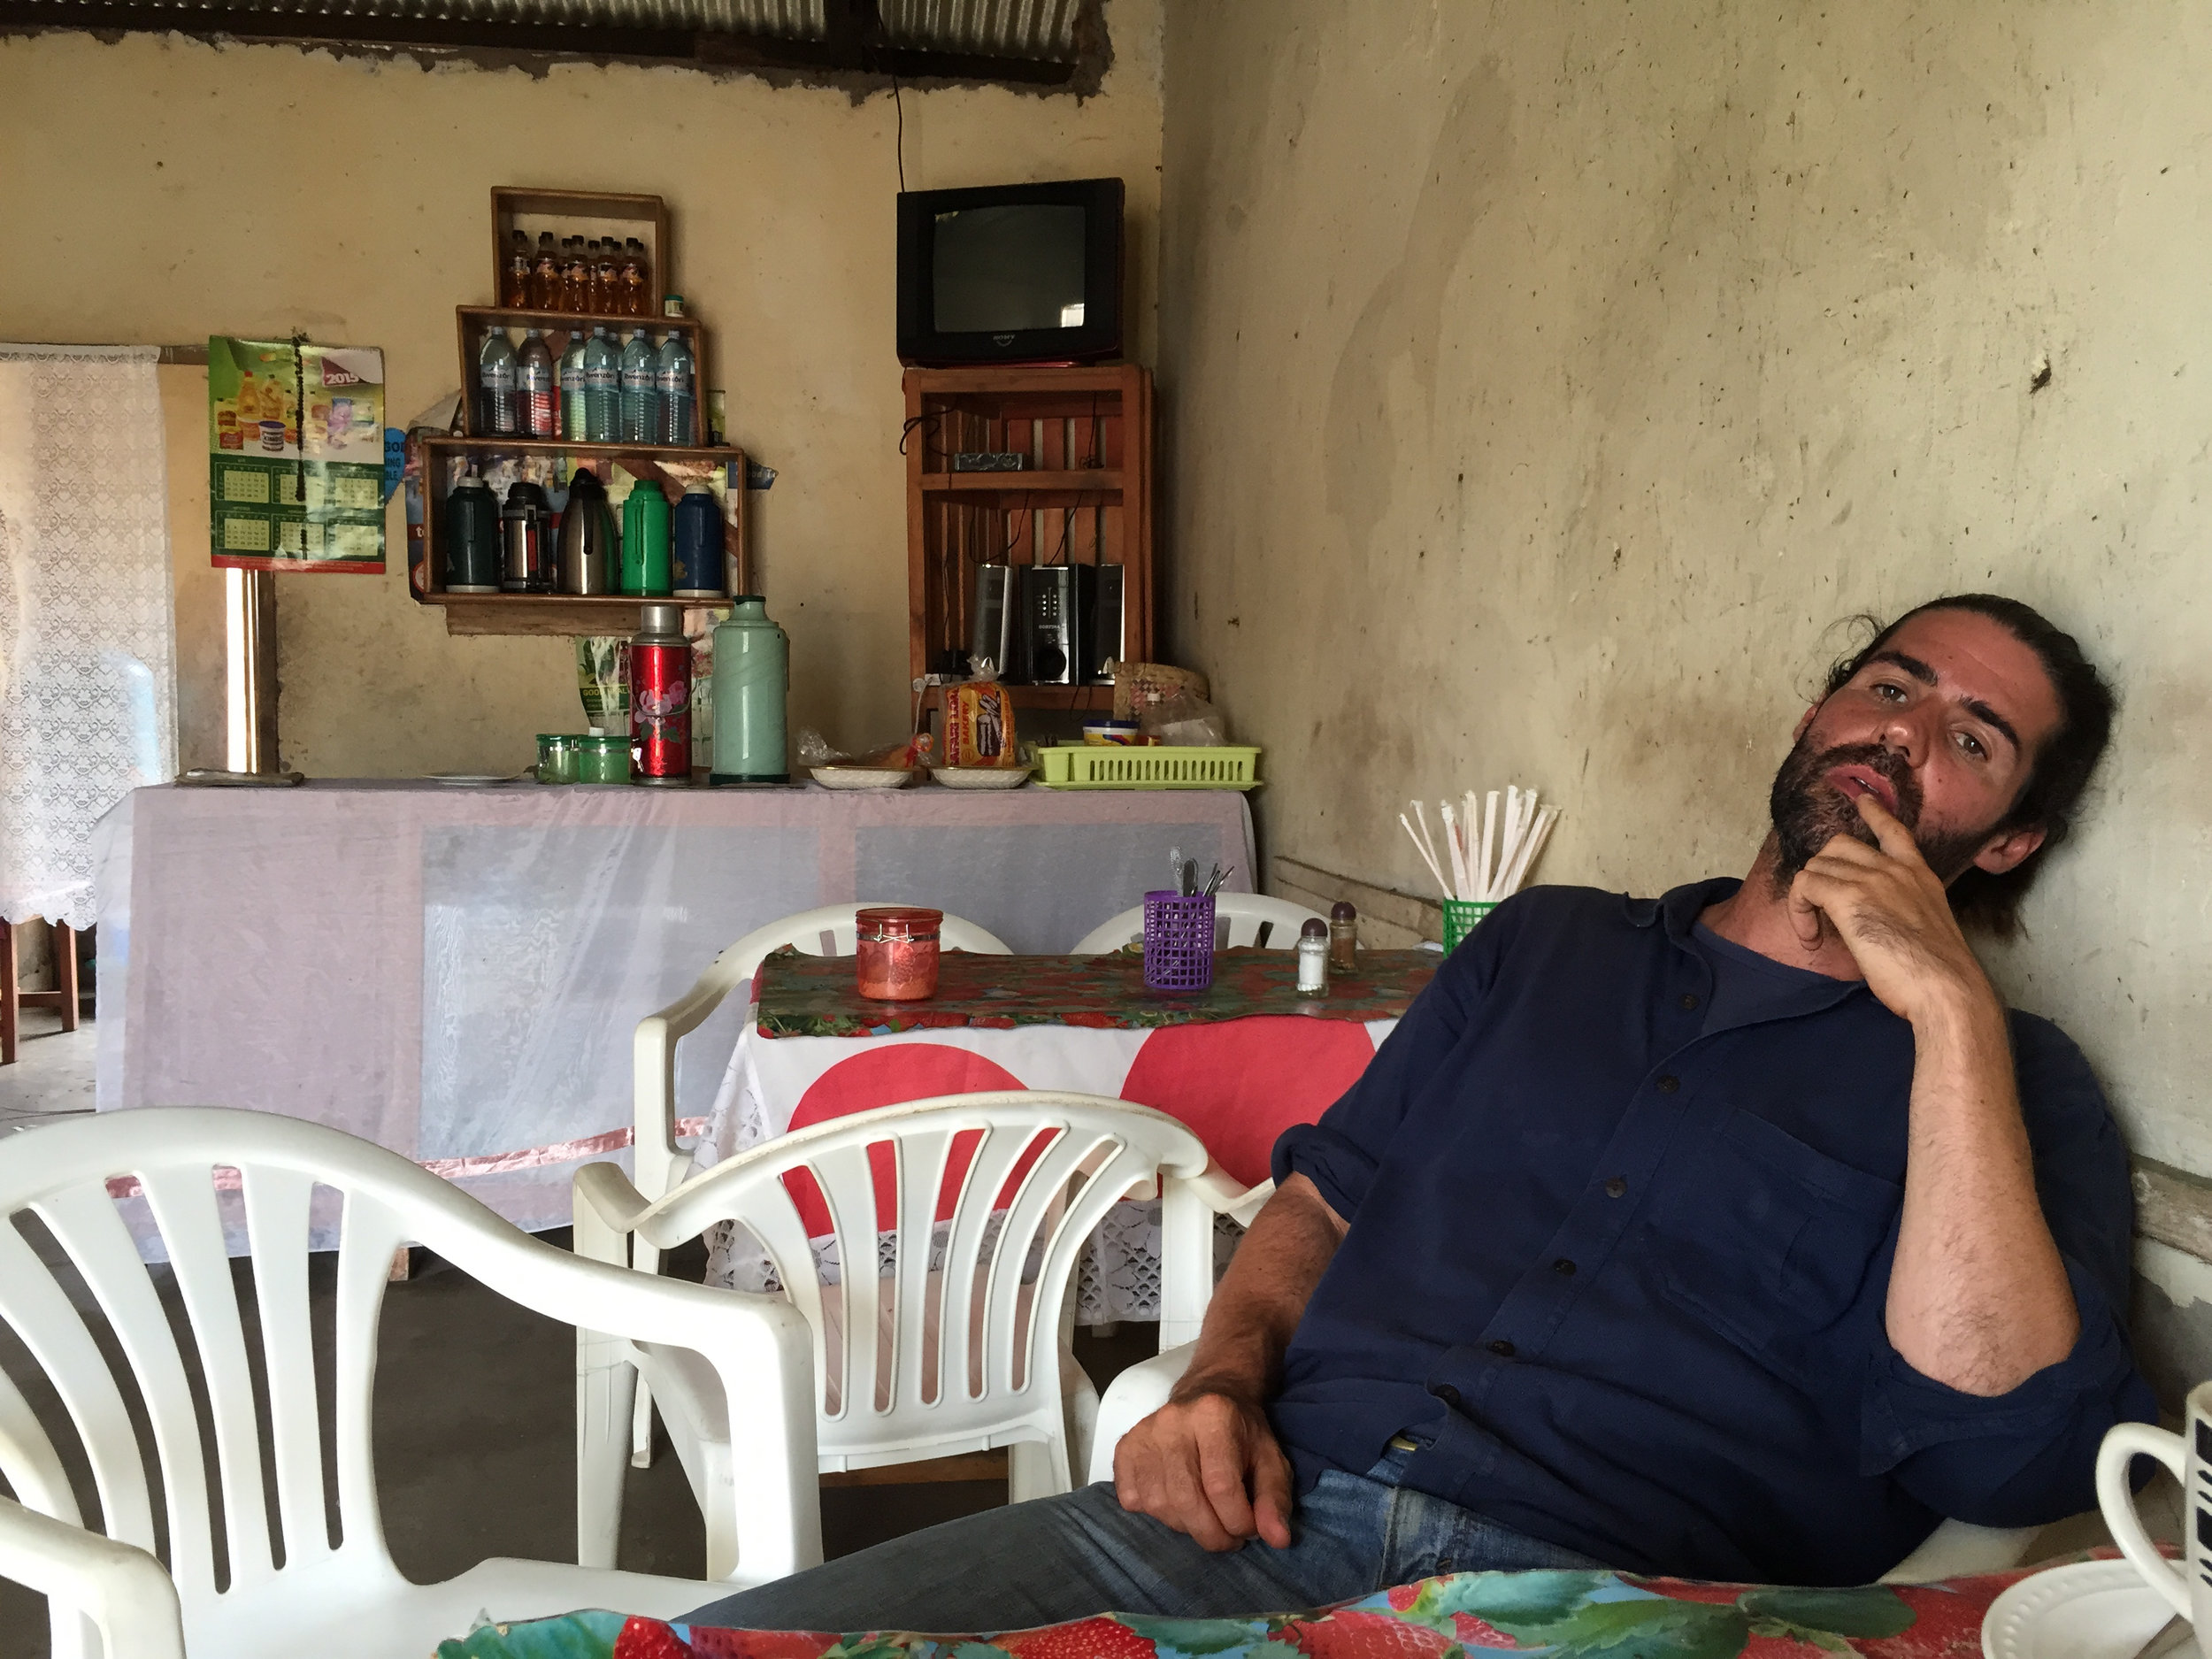 A man is sitting in an Eritrean cafe